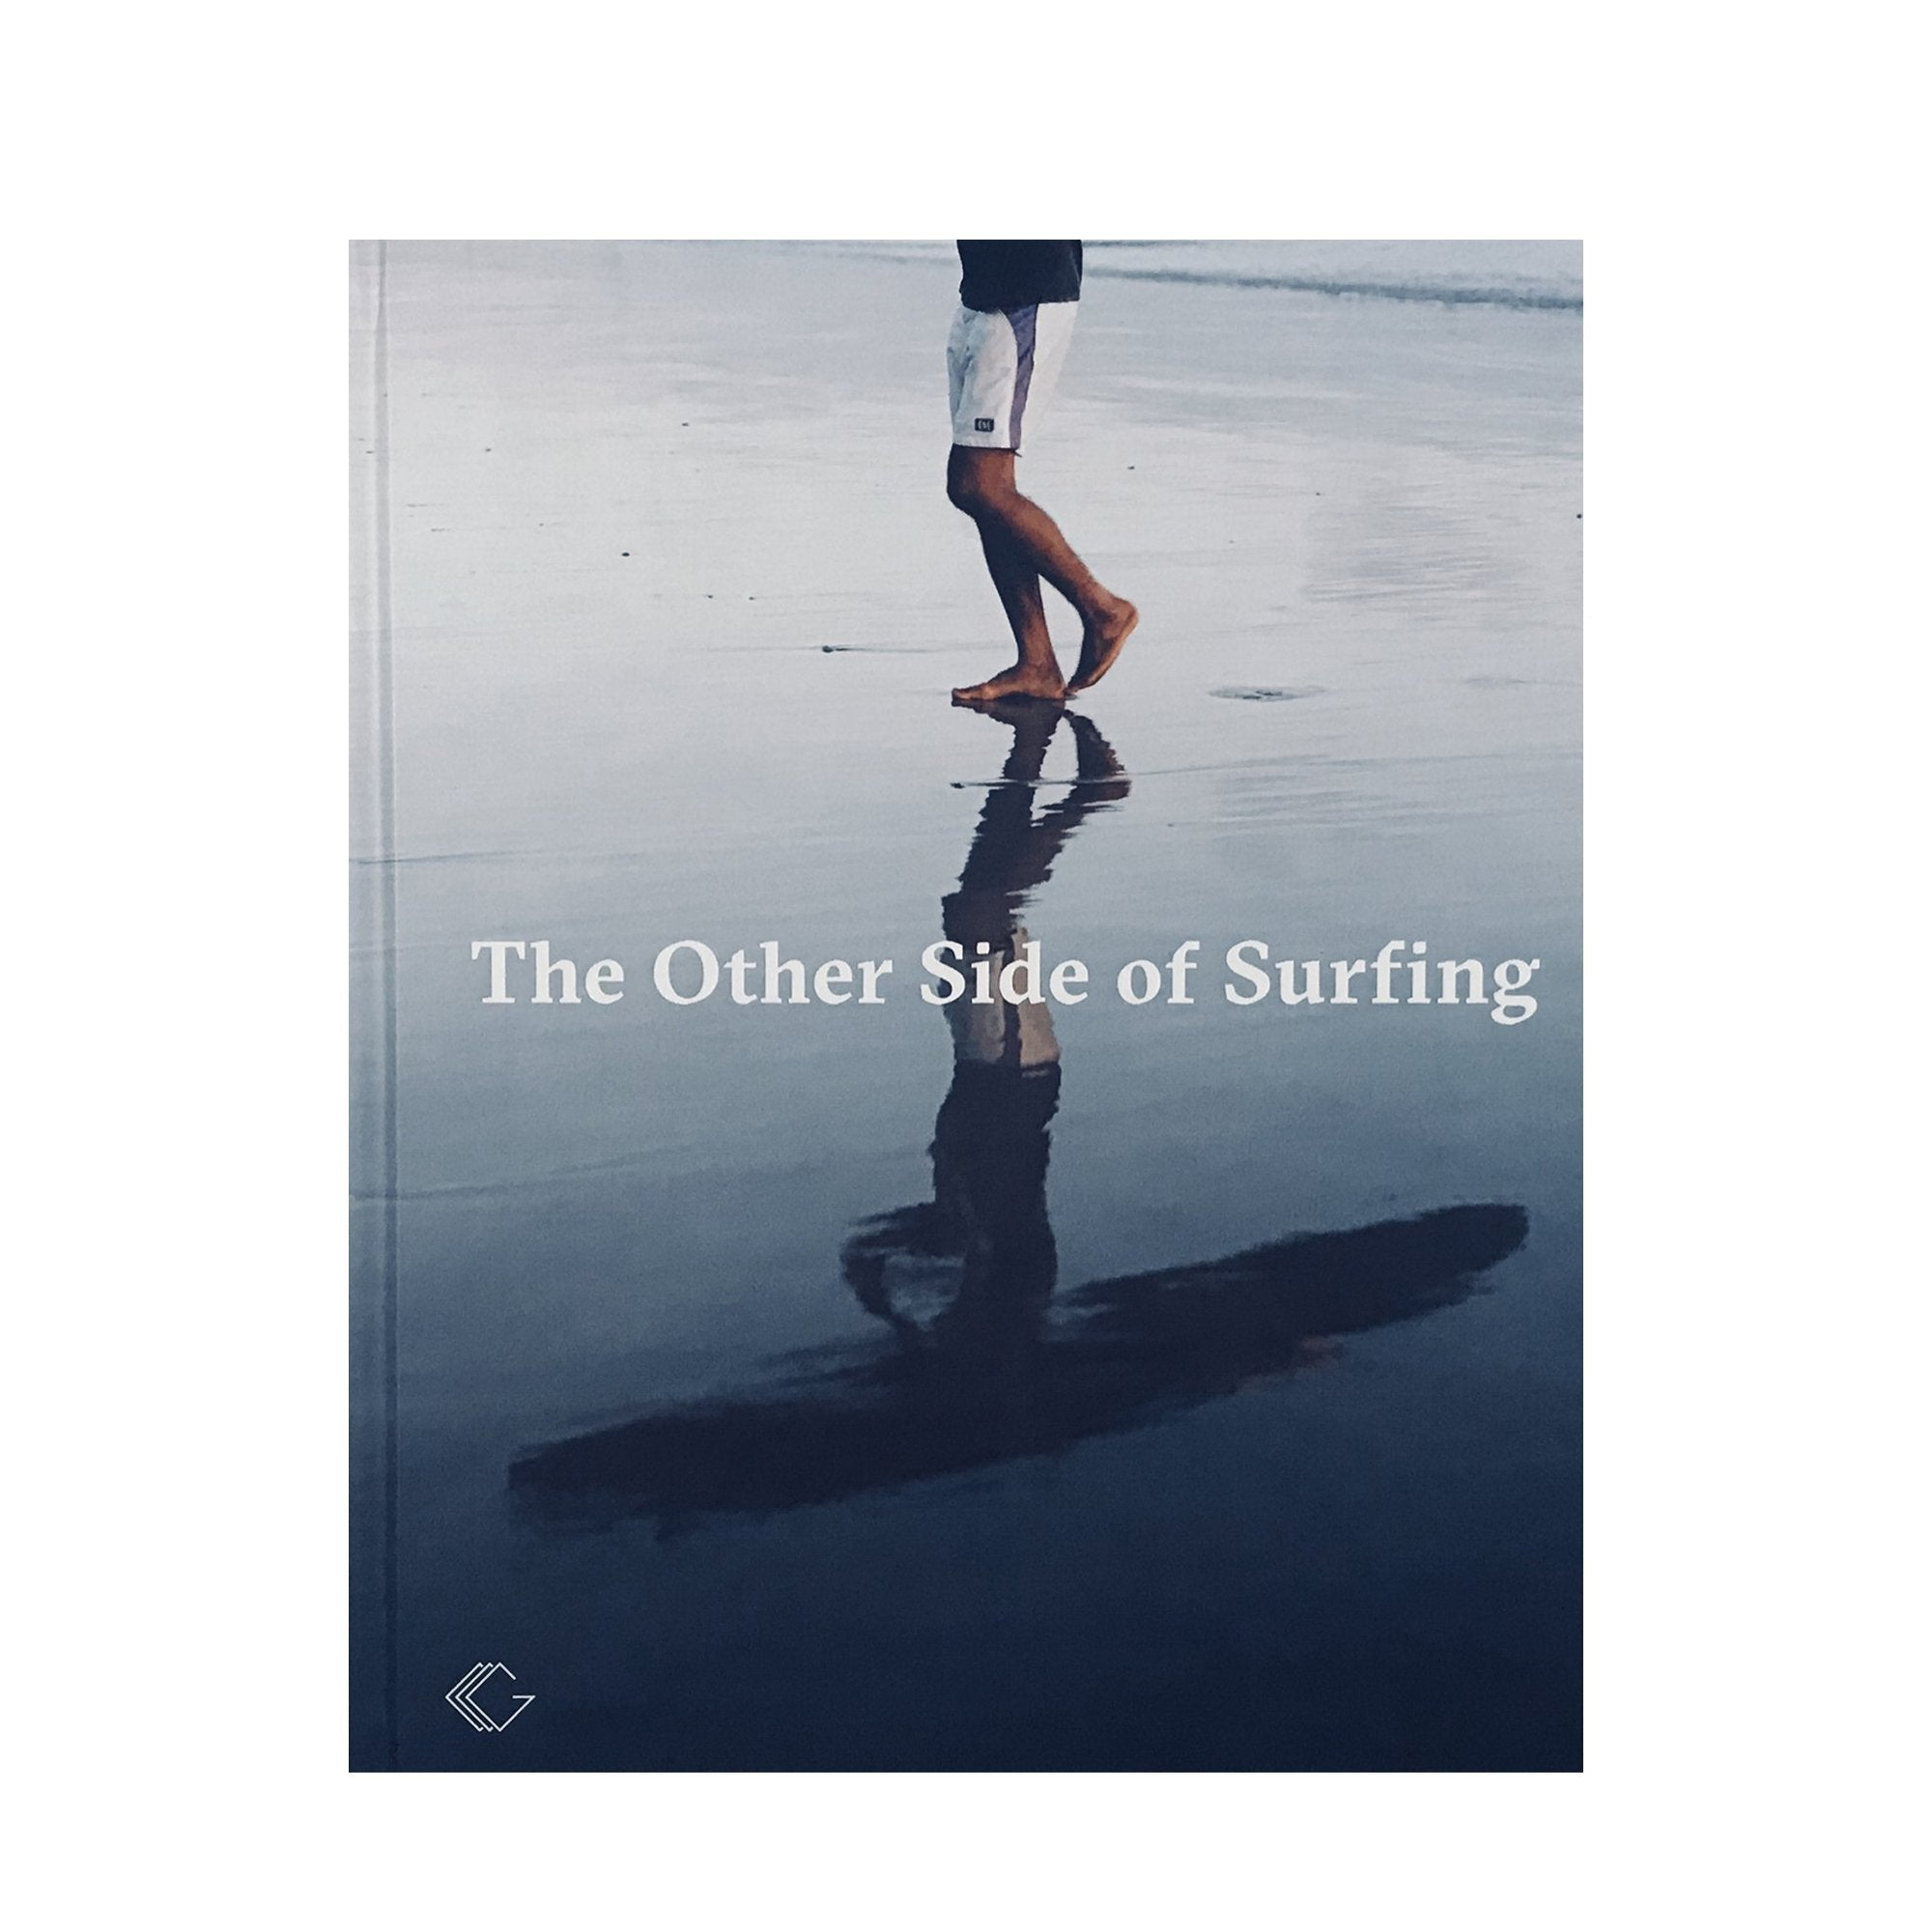 the other side of surfing - LANGBRETT